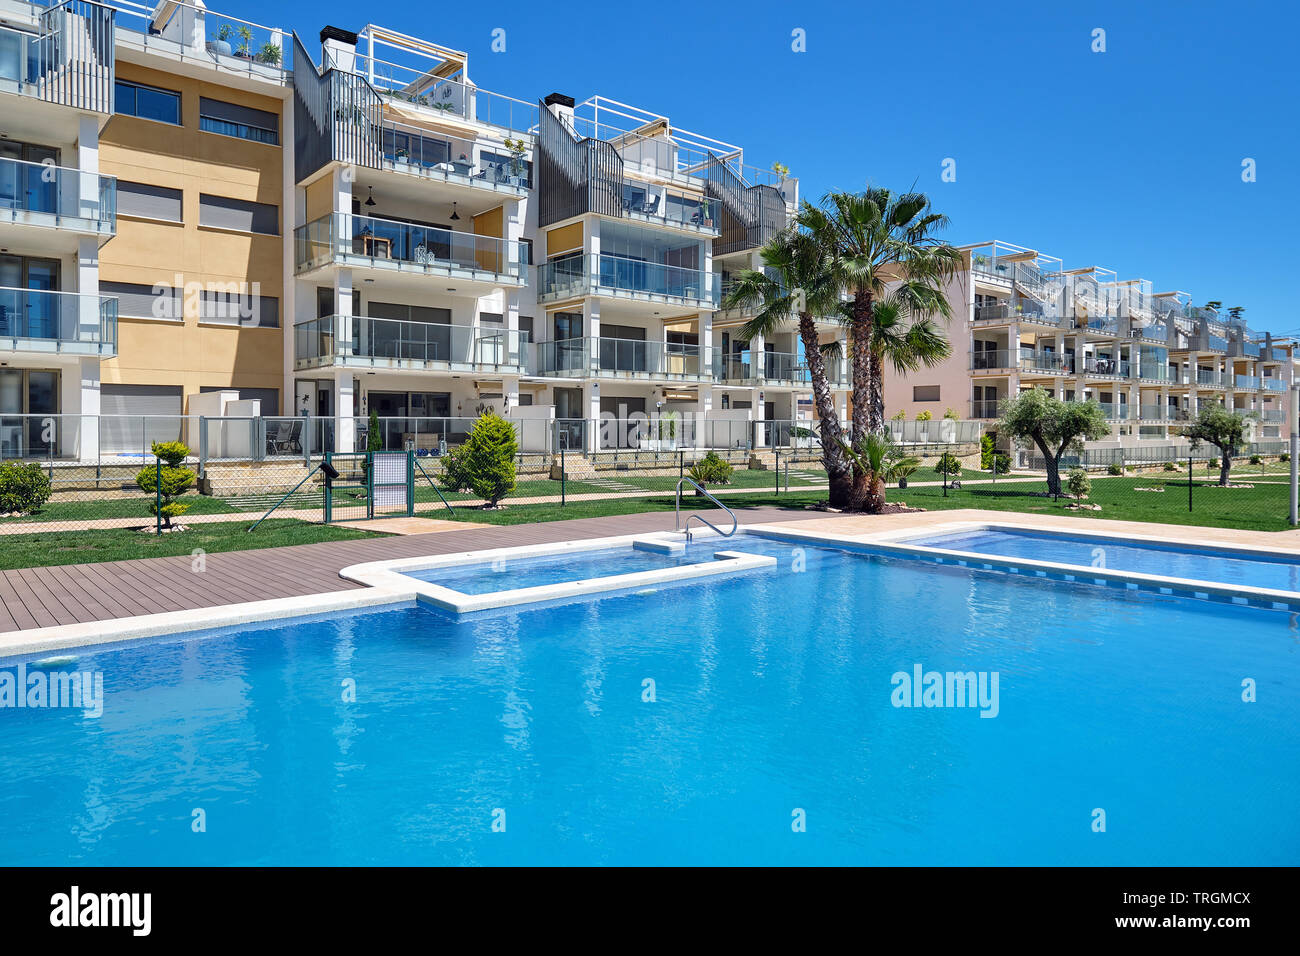 Torrevieja, Spain - April 24, 2019: High rise residential multi-storey house closed urbanization with swimming pool, waterside view, no people. Provin - Stock Image